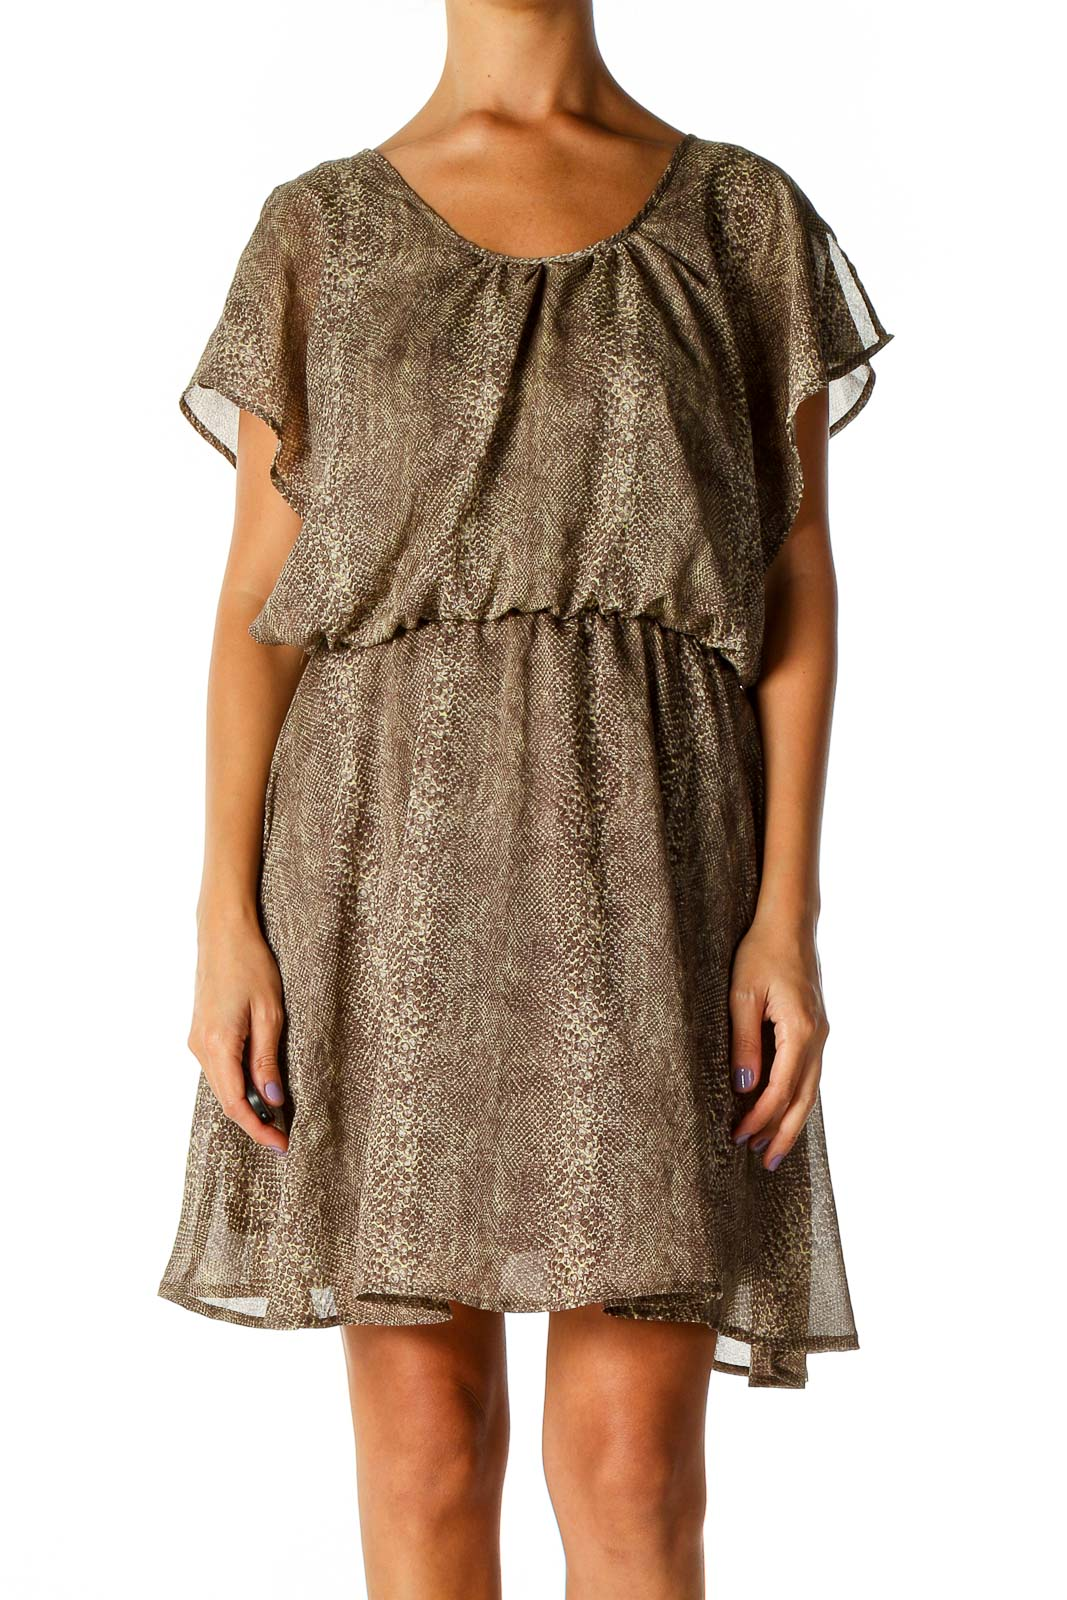 Brown Animal Print Bohemian Fit & Flare Dress Front